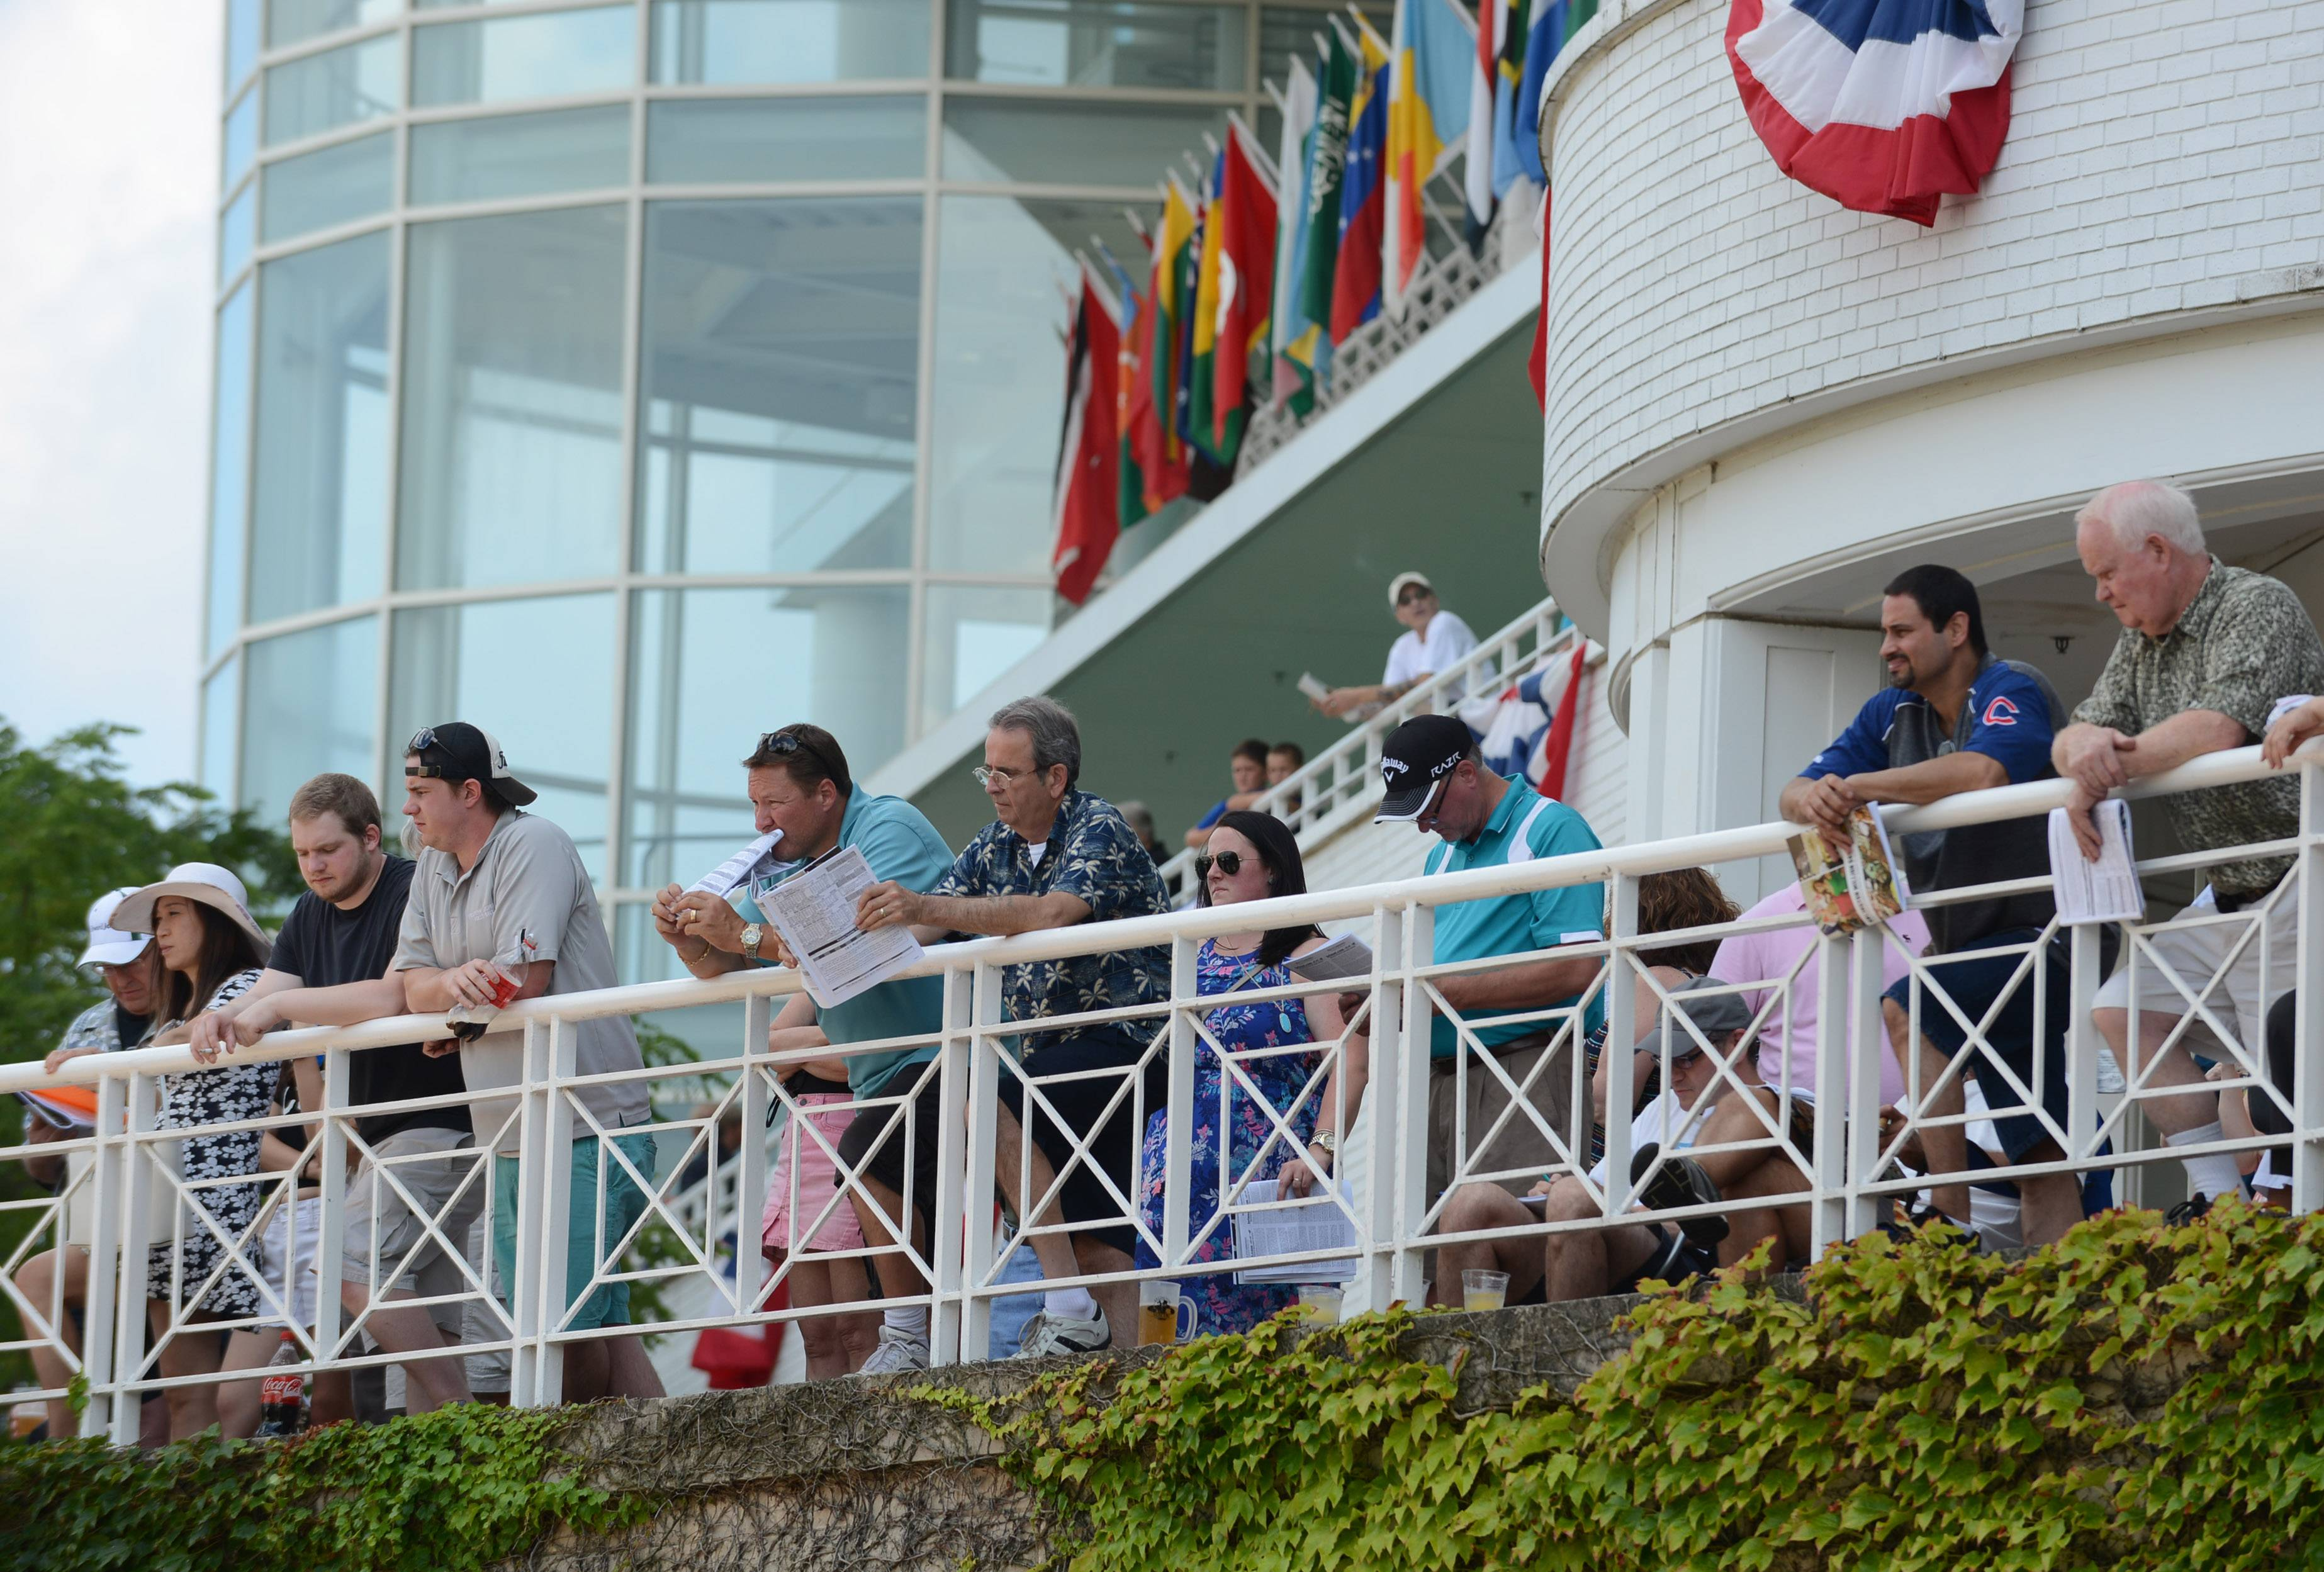 Racing fans view the paddock from above Saturday during Arlington International Festival of Racing.